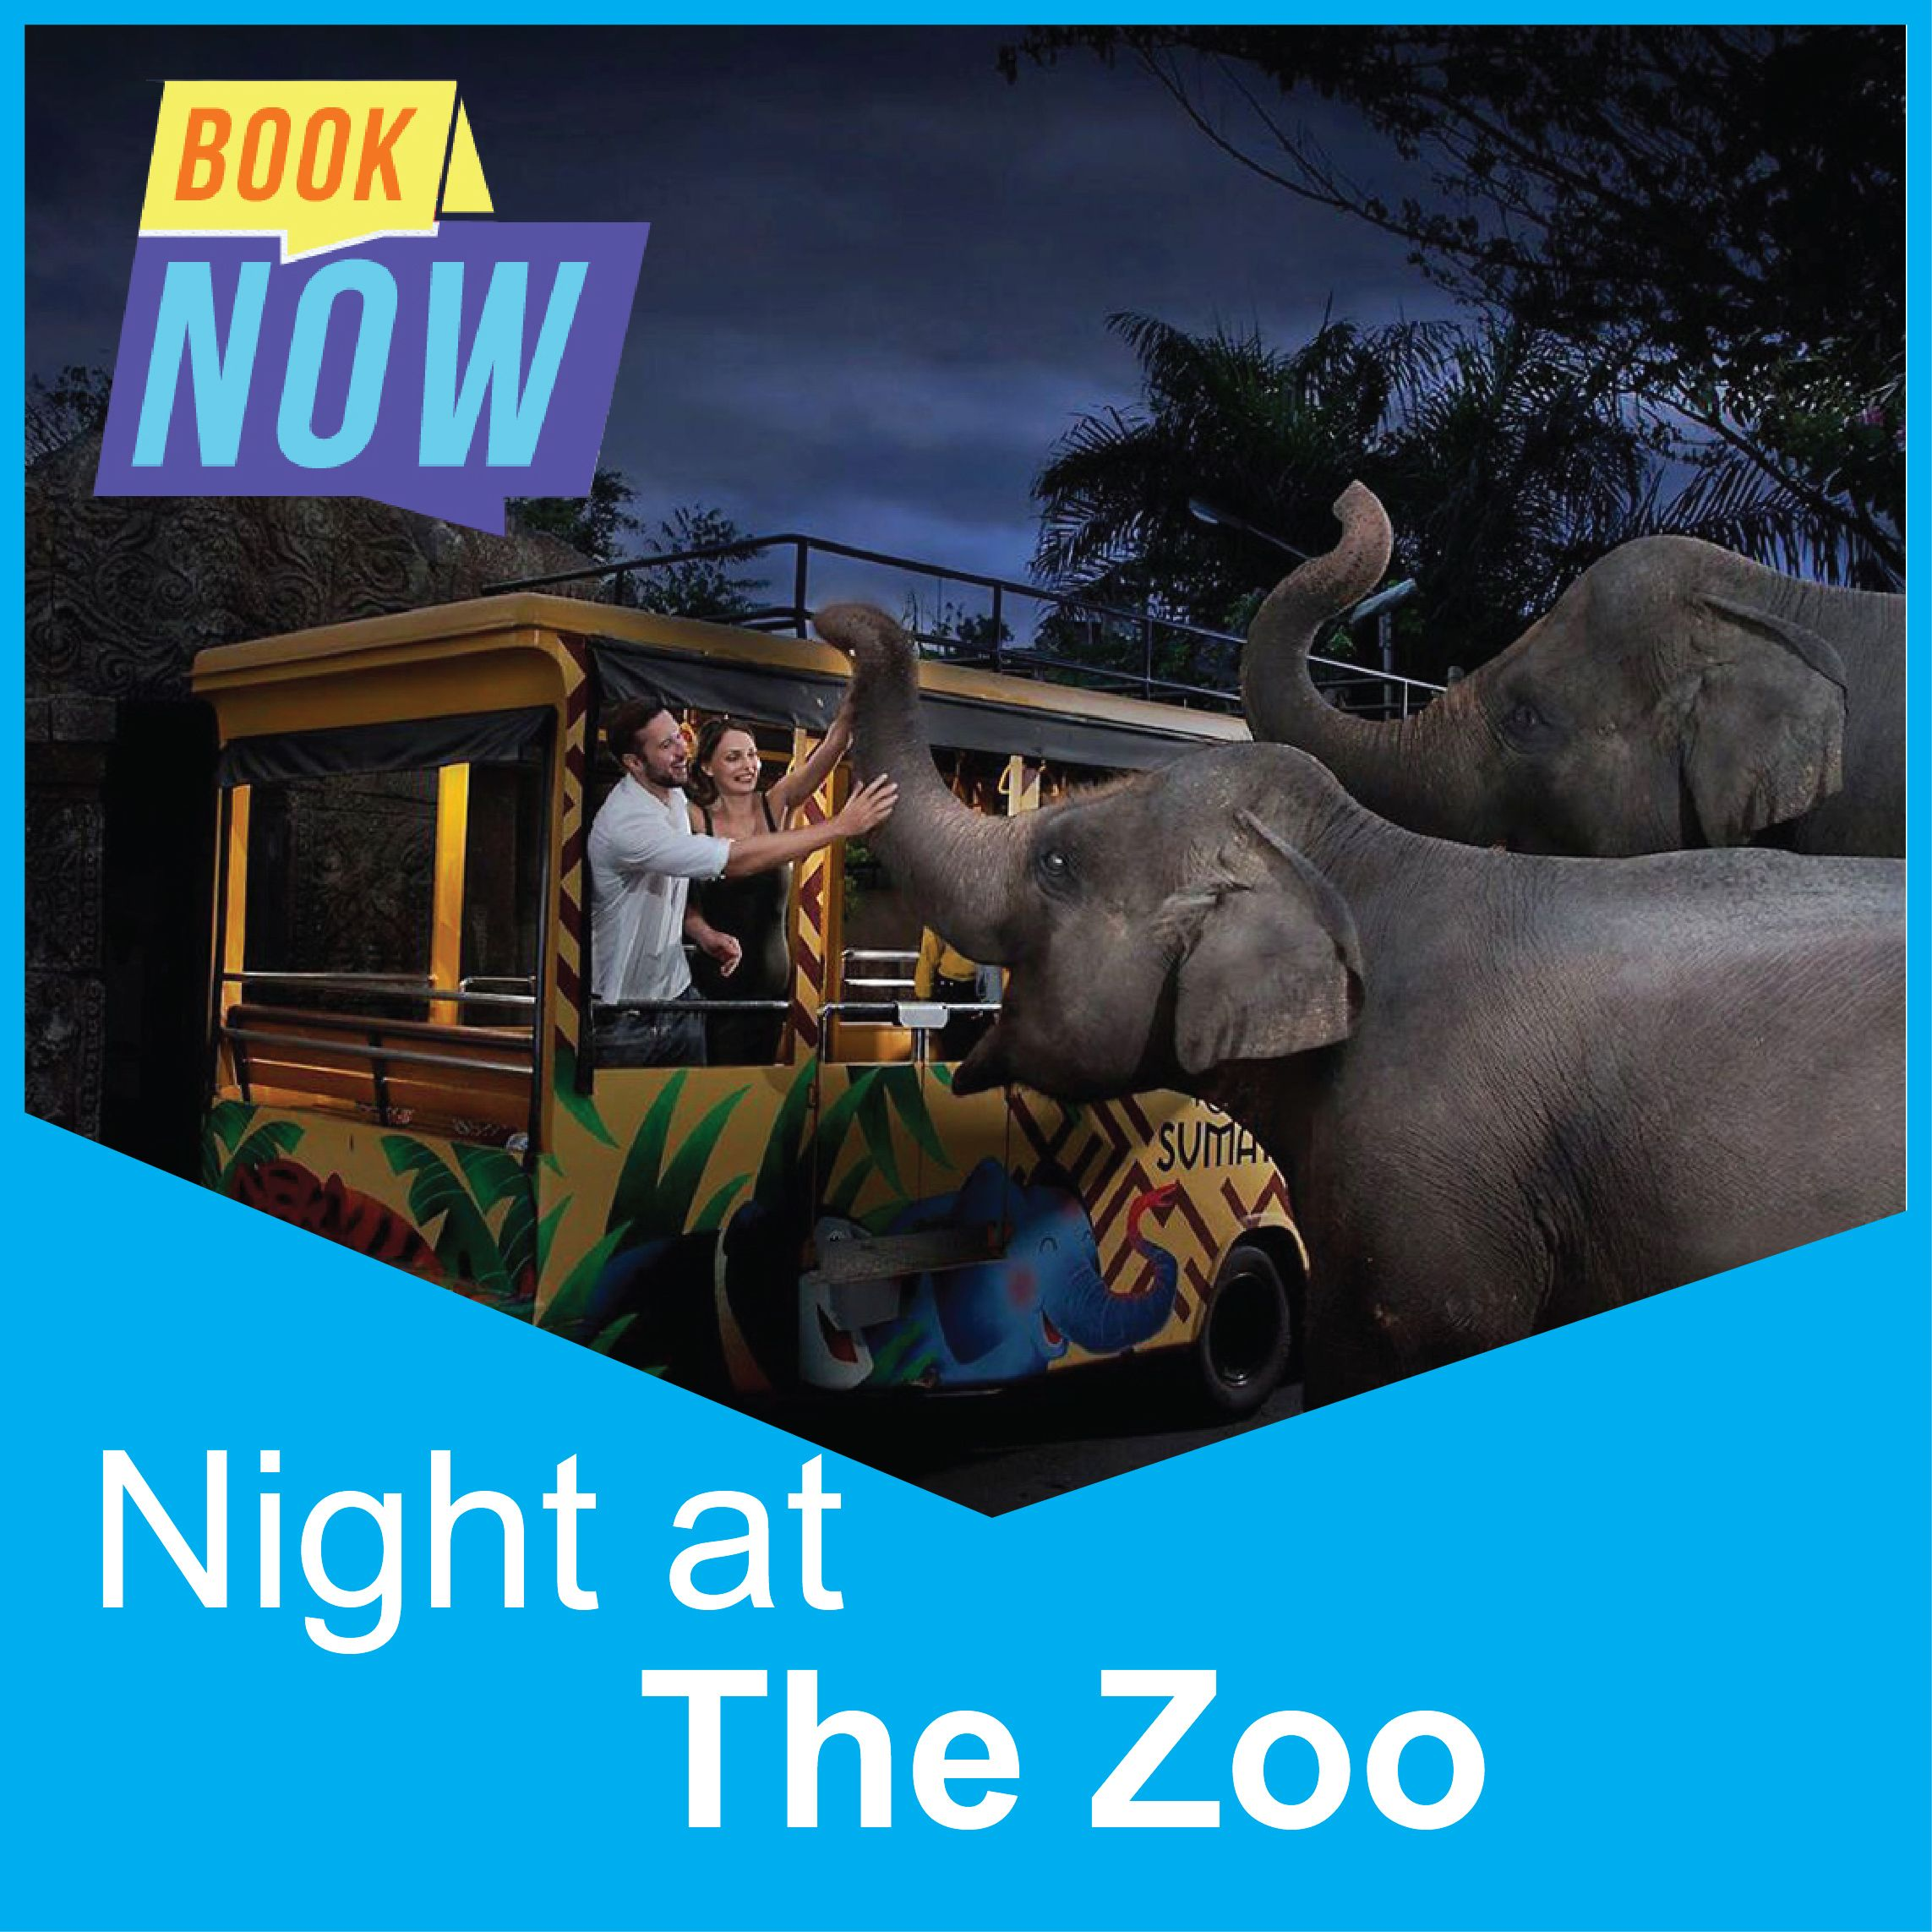 Night at The Zoo